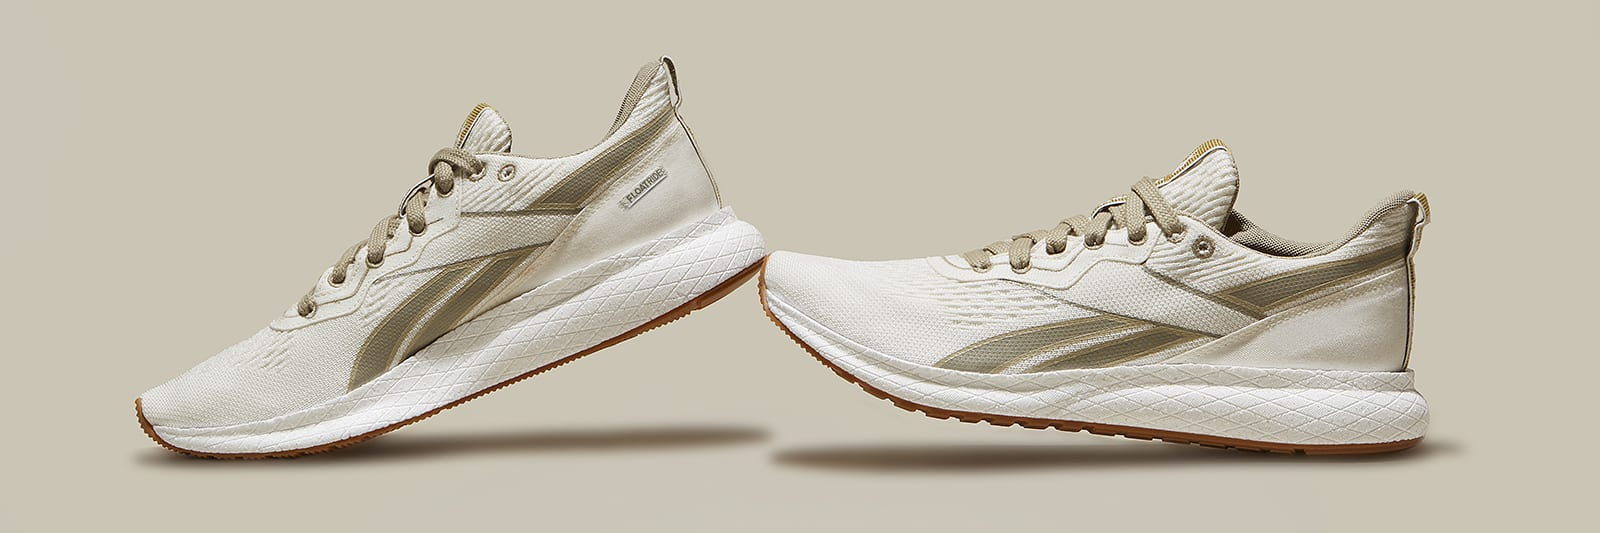 ayudar paquete ironía  Reebok Takes You on a Run With its First Plant-Based Shoe